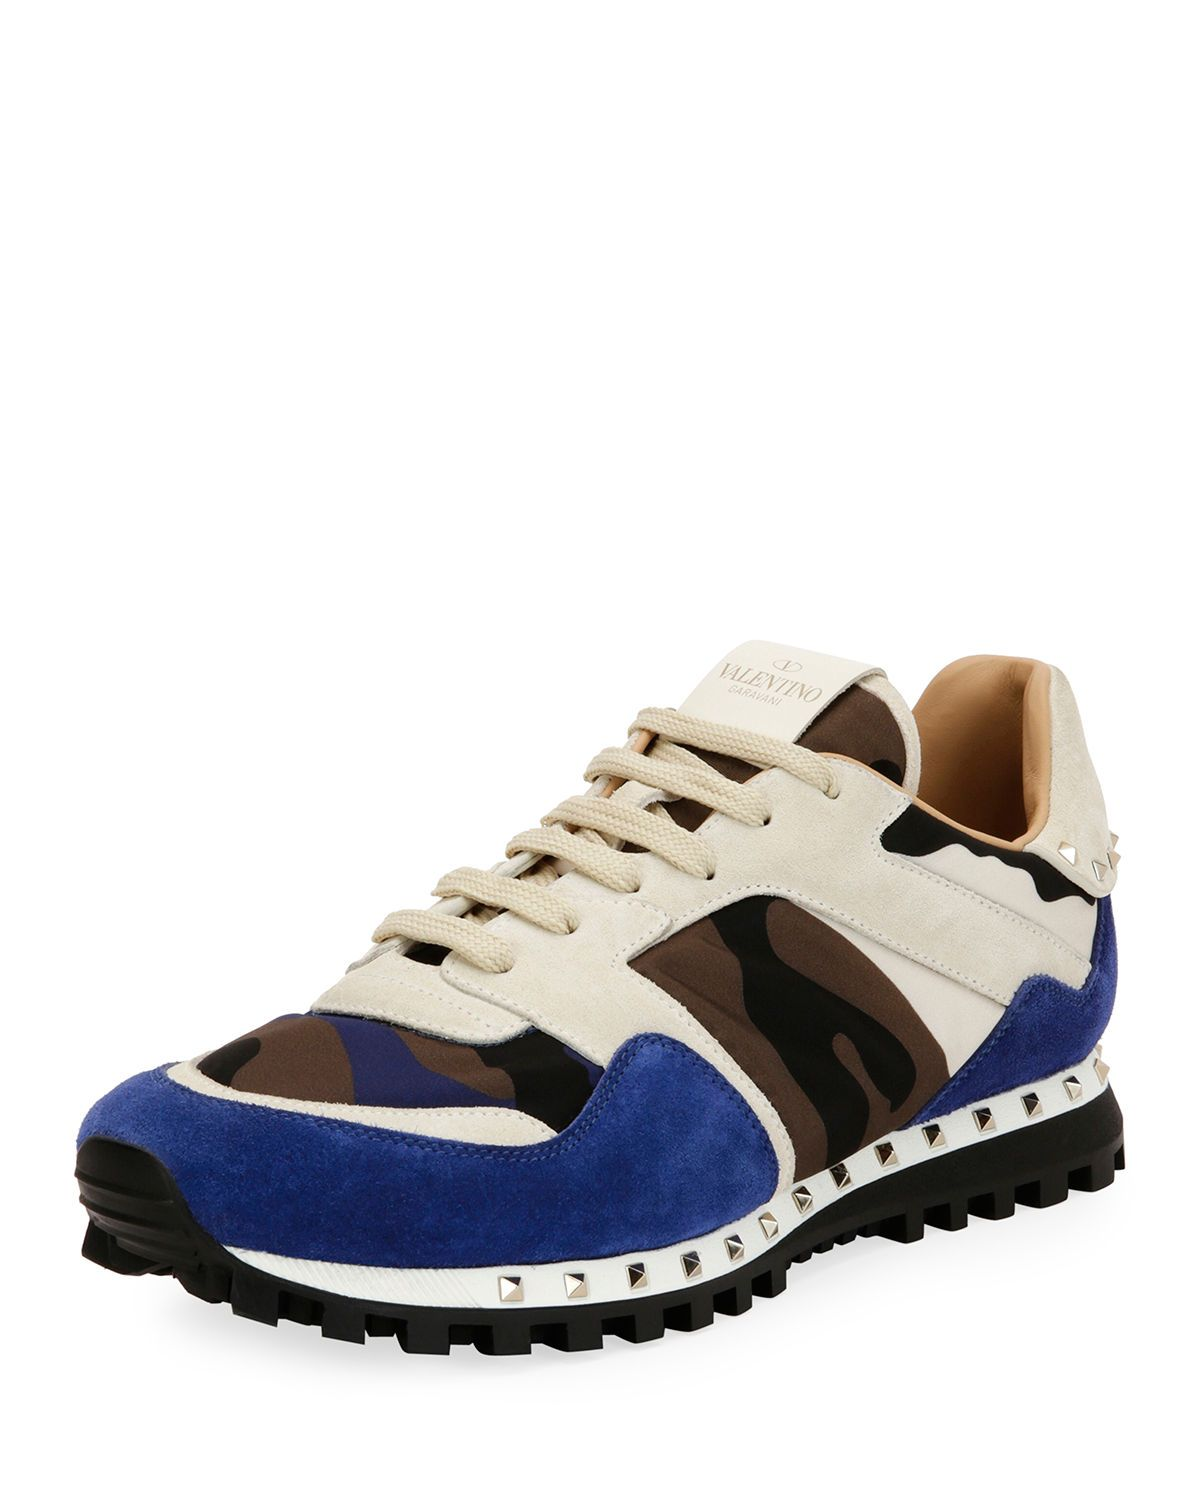 d098f6020aa1 Valentino Mens Rockrunner Camo Leather Sneaker